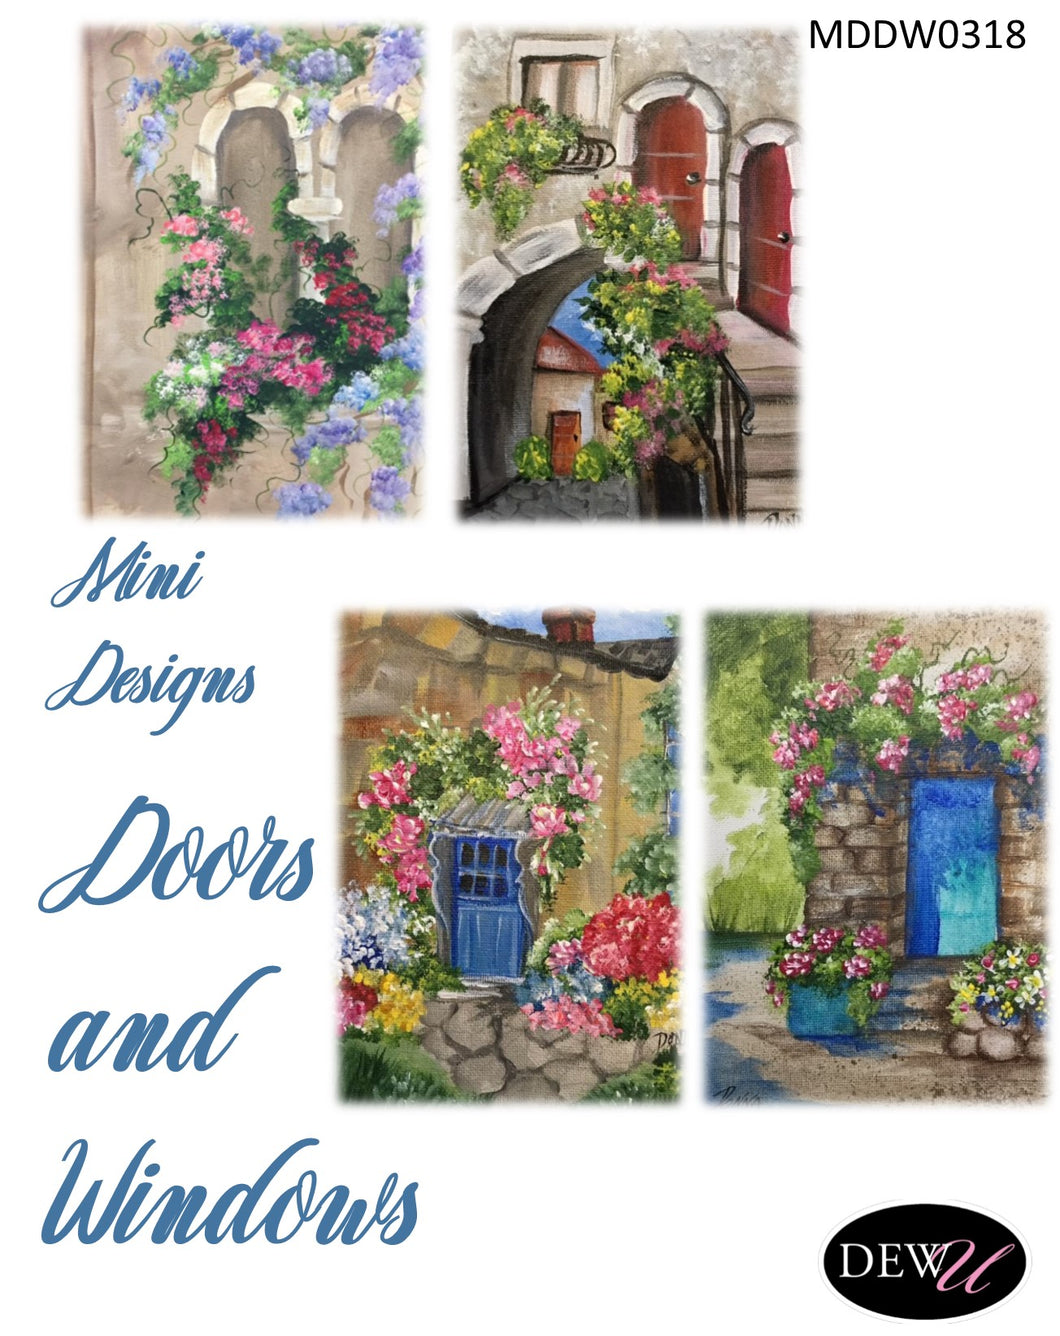 Mini Designs Doors and Windows-PP